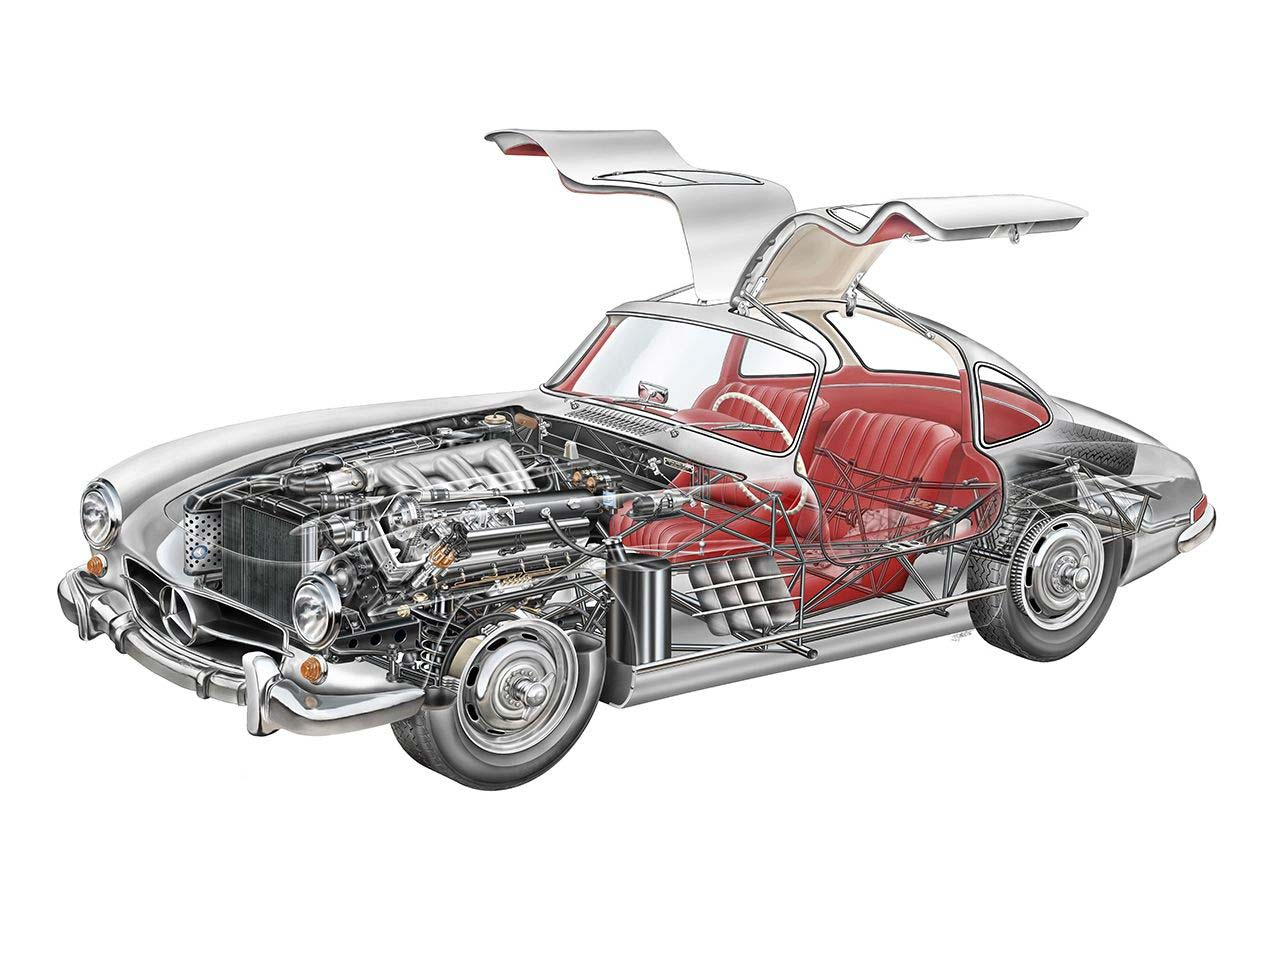 Mercedes-Benz 300 SL Gullwing cutaway drawing